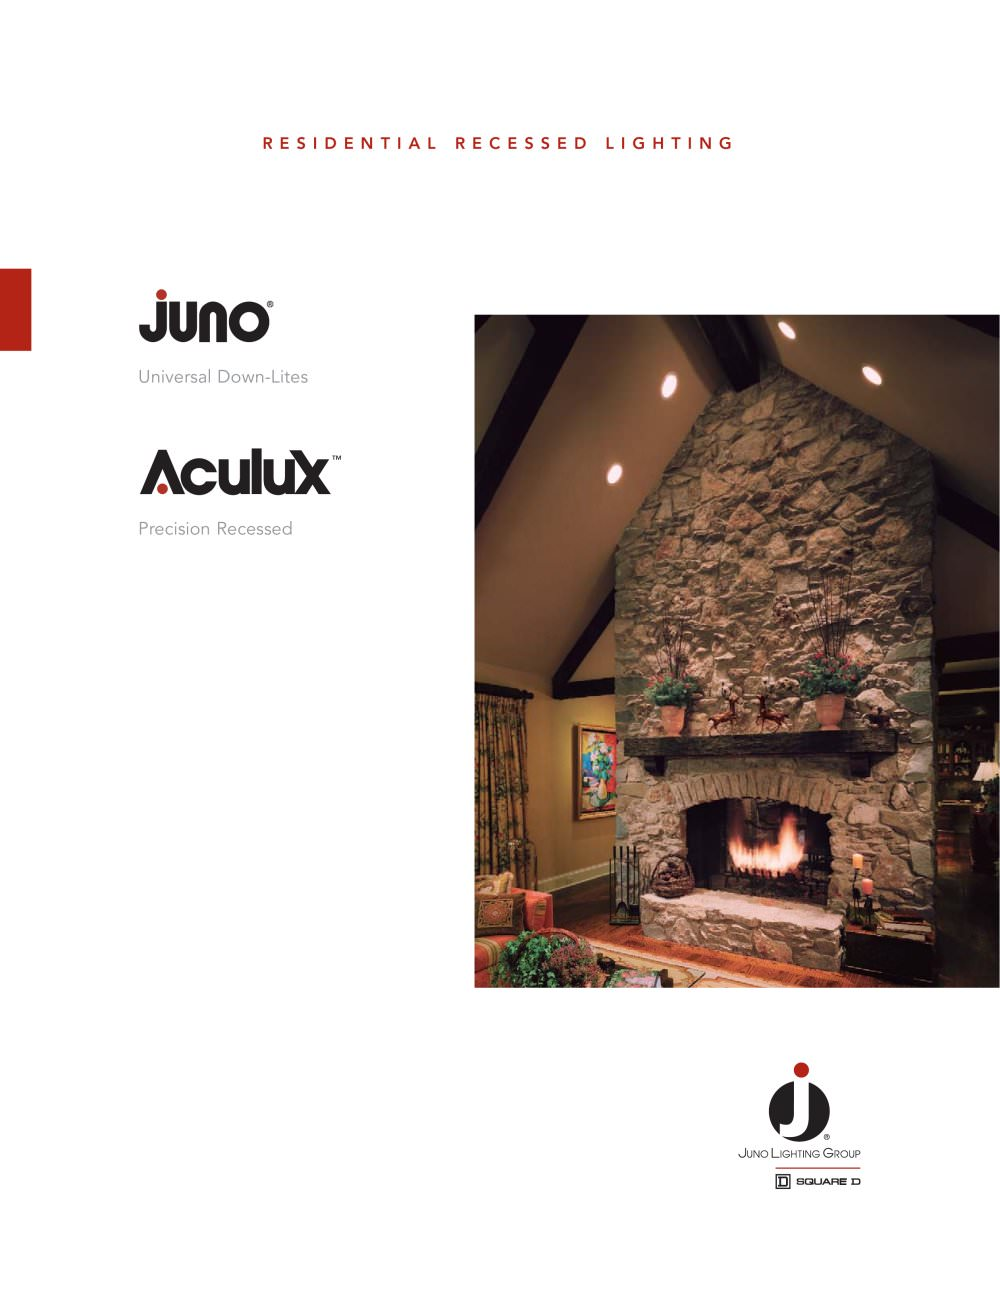 Juno and aculux residential recessed lighting juno pdf juno and aculux residential recessed lighting 1 84 pages aloadofball Images